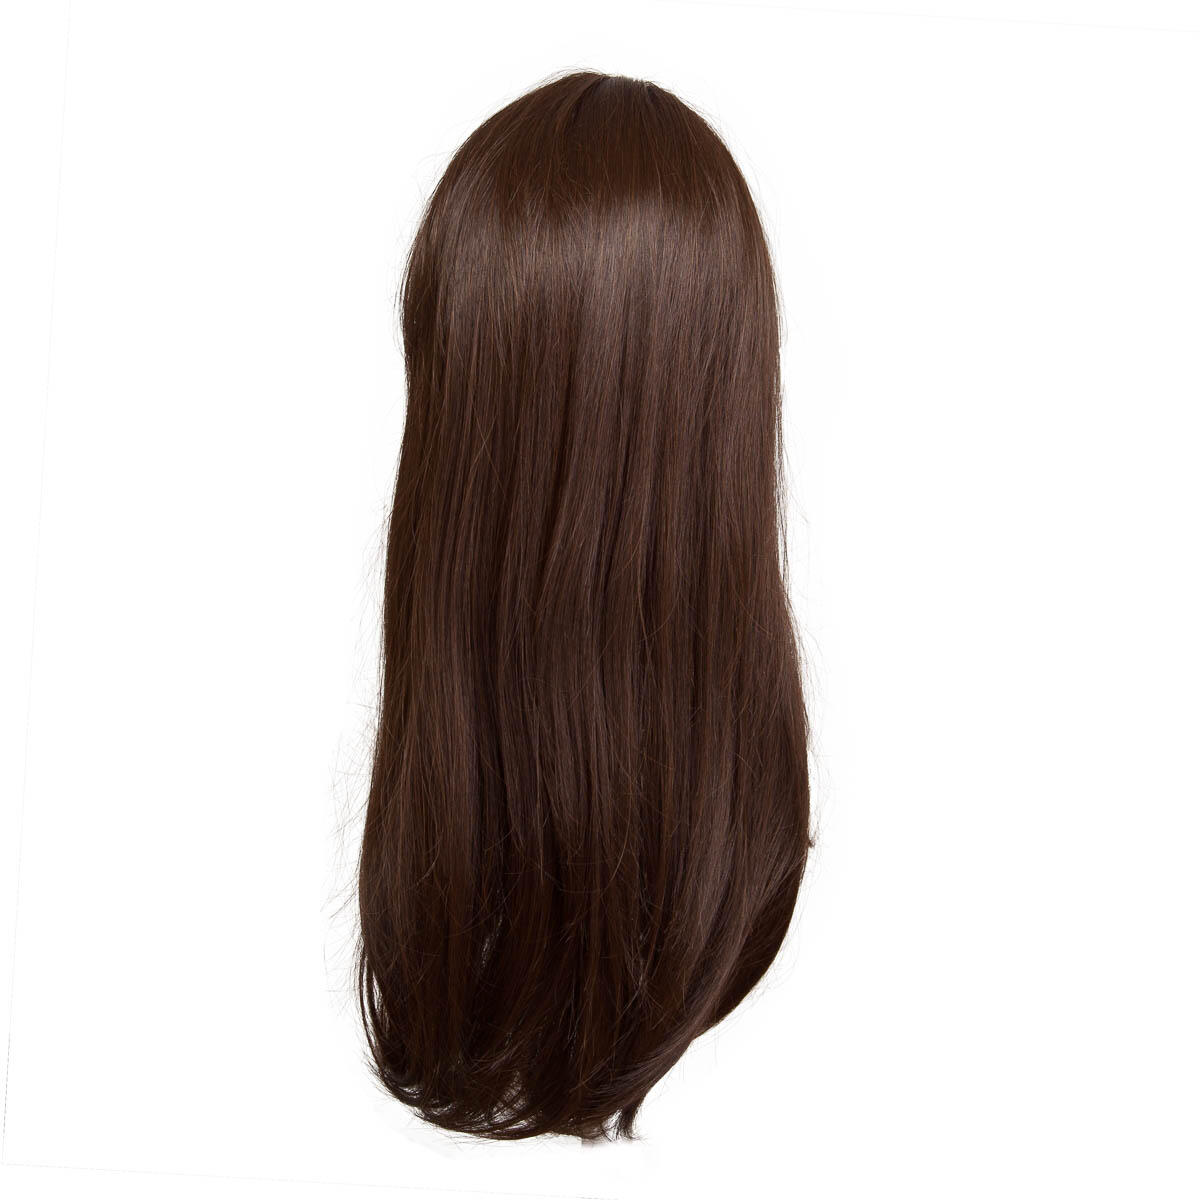 Lace Front Wig Long 2.2 Coffee Brown 60 cm